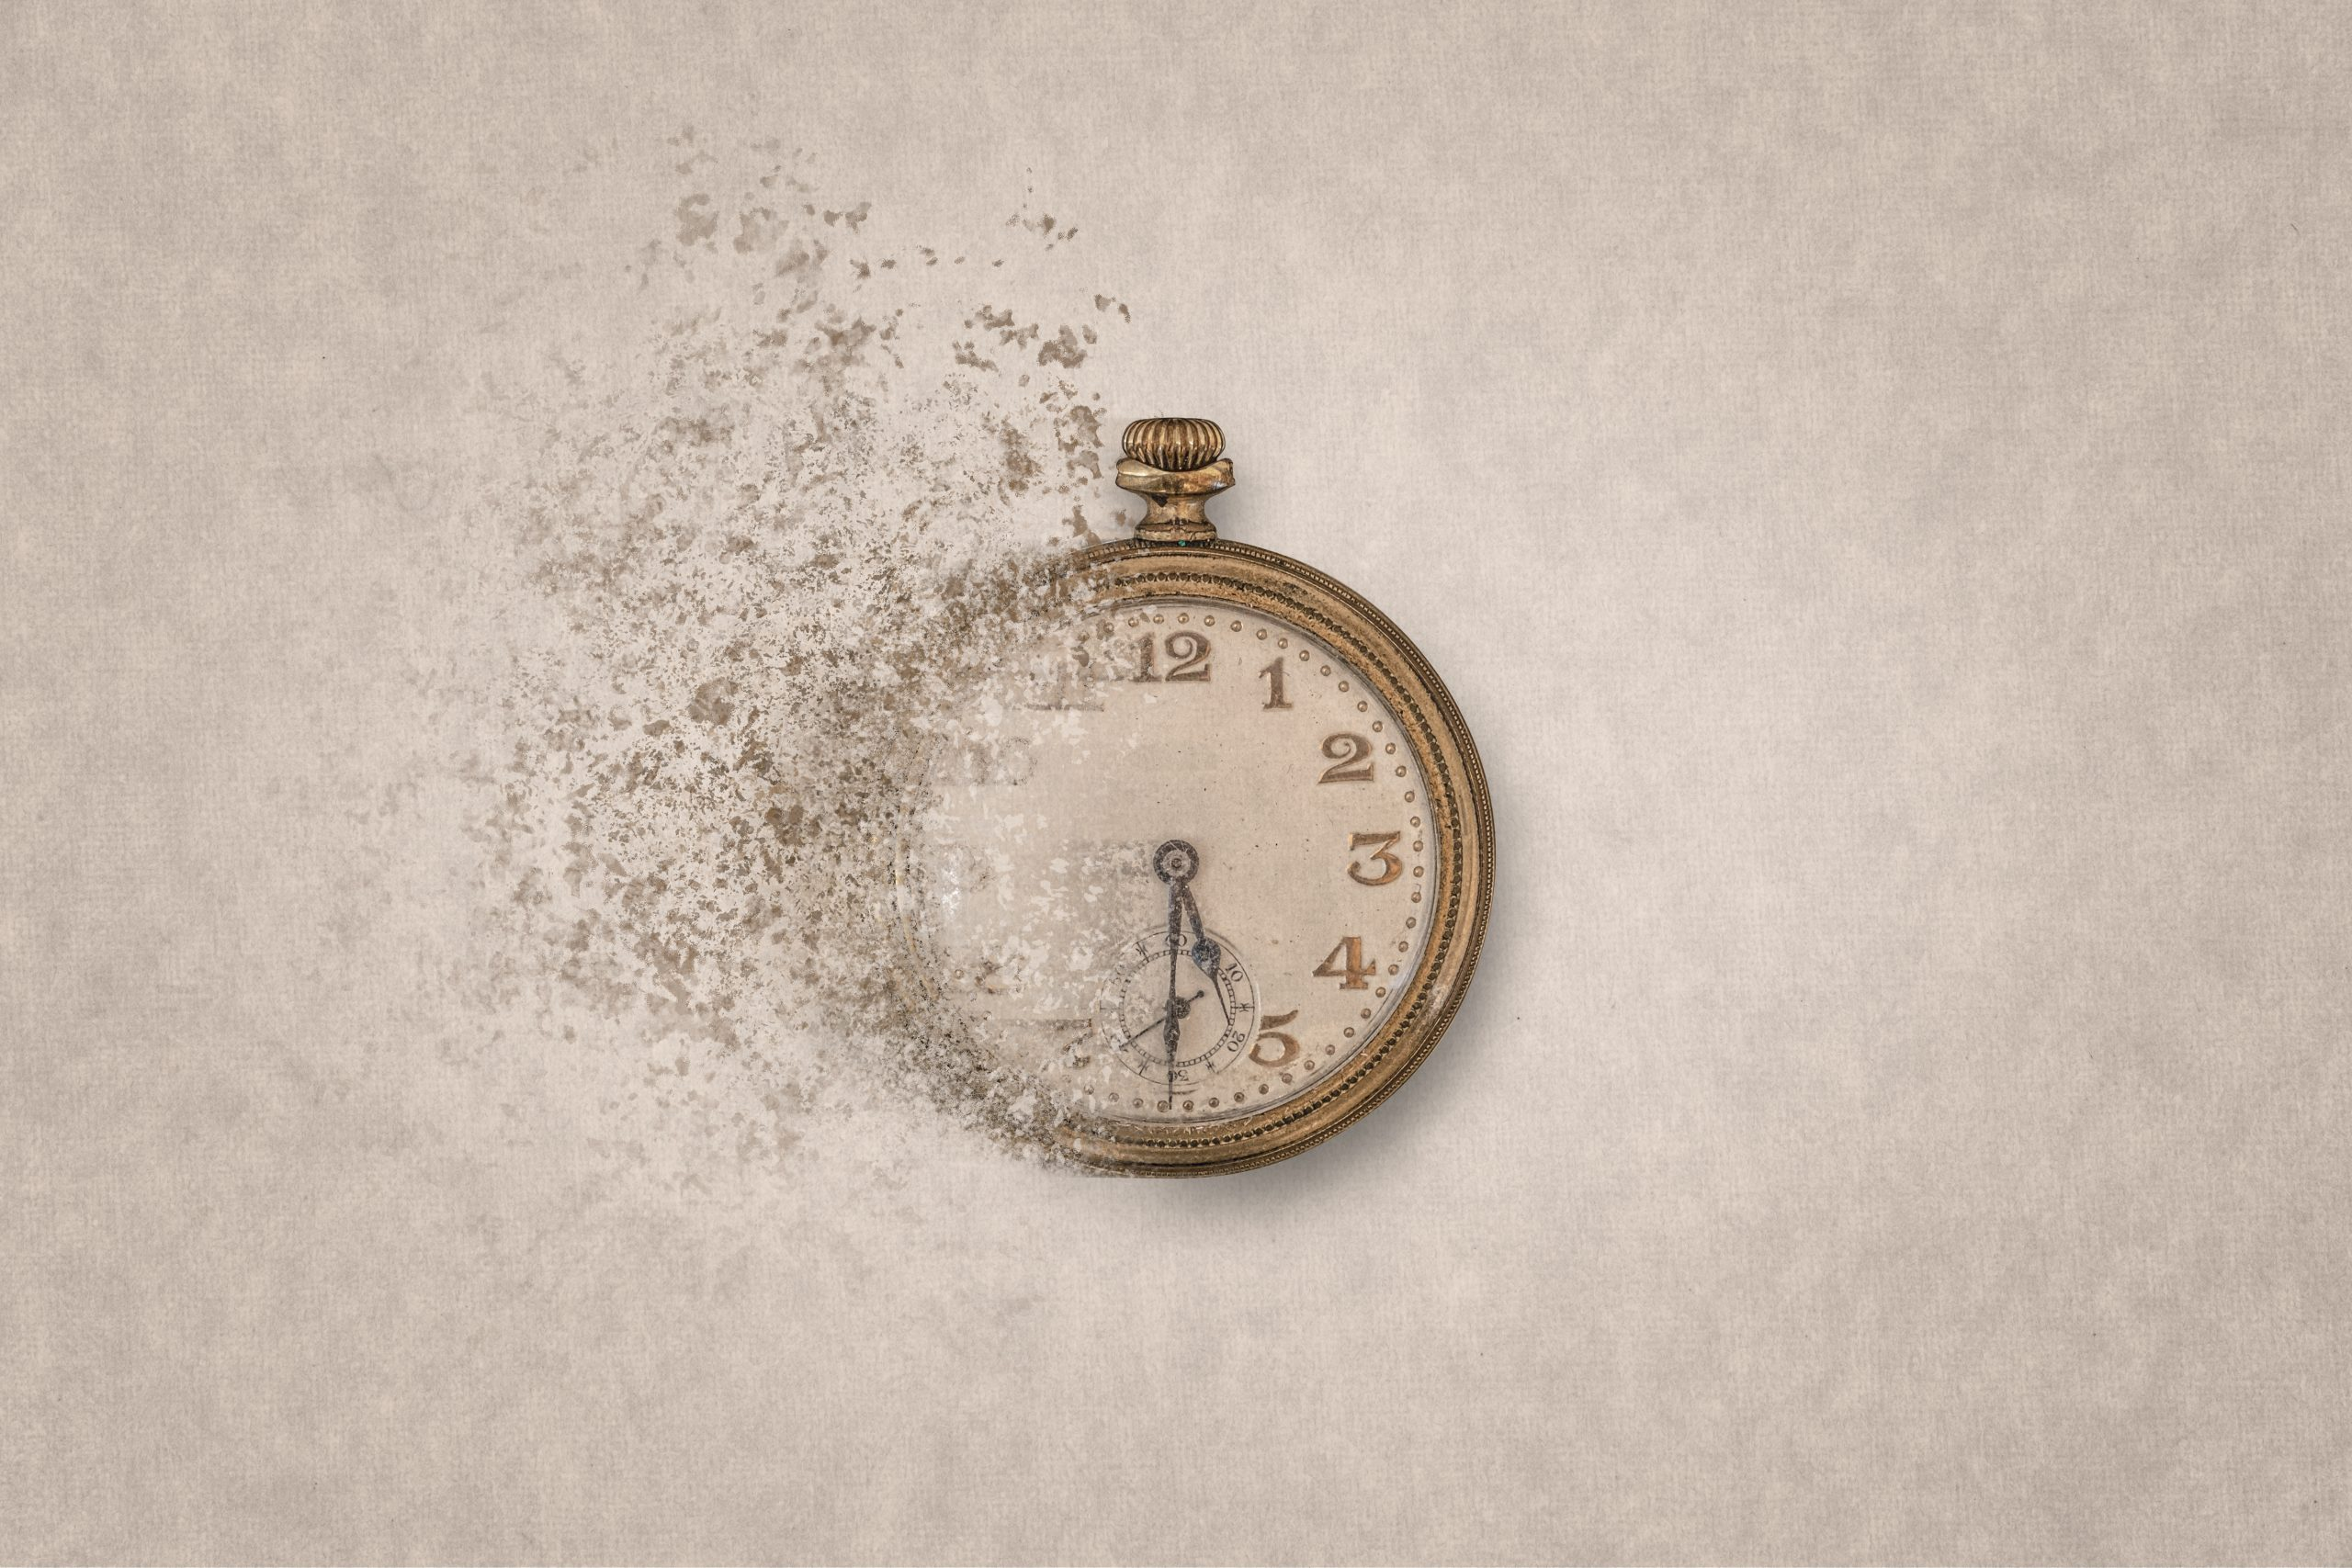 Ancient clock on a clear background disintegrates into small pieces.